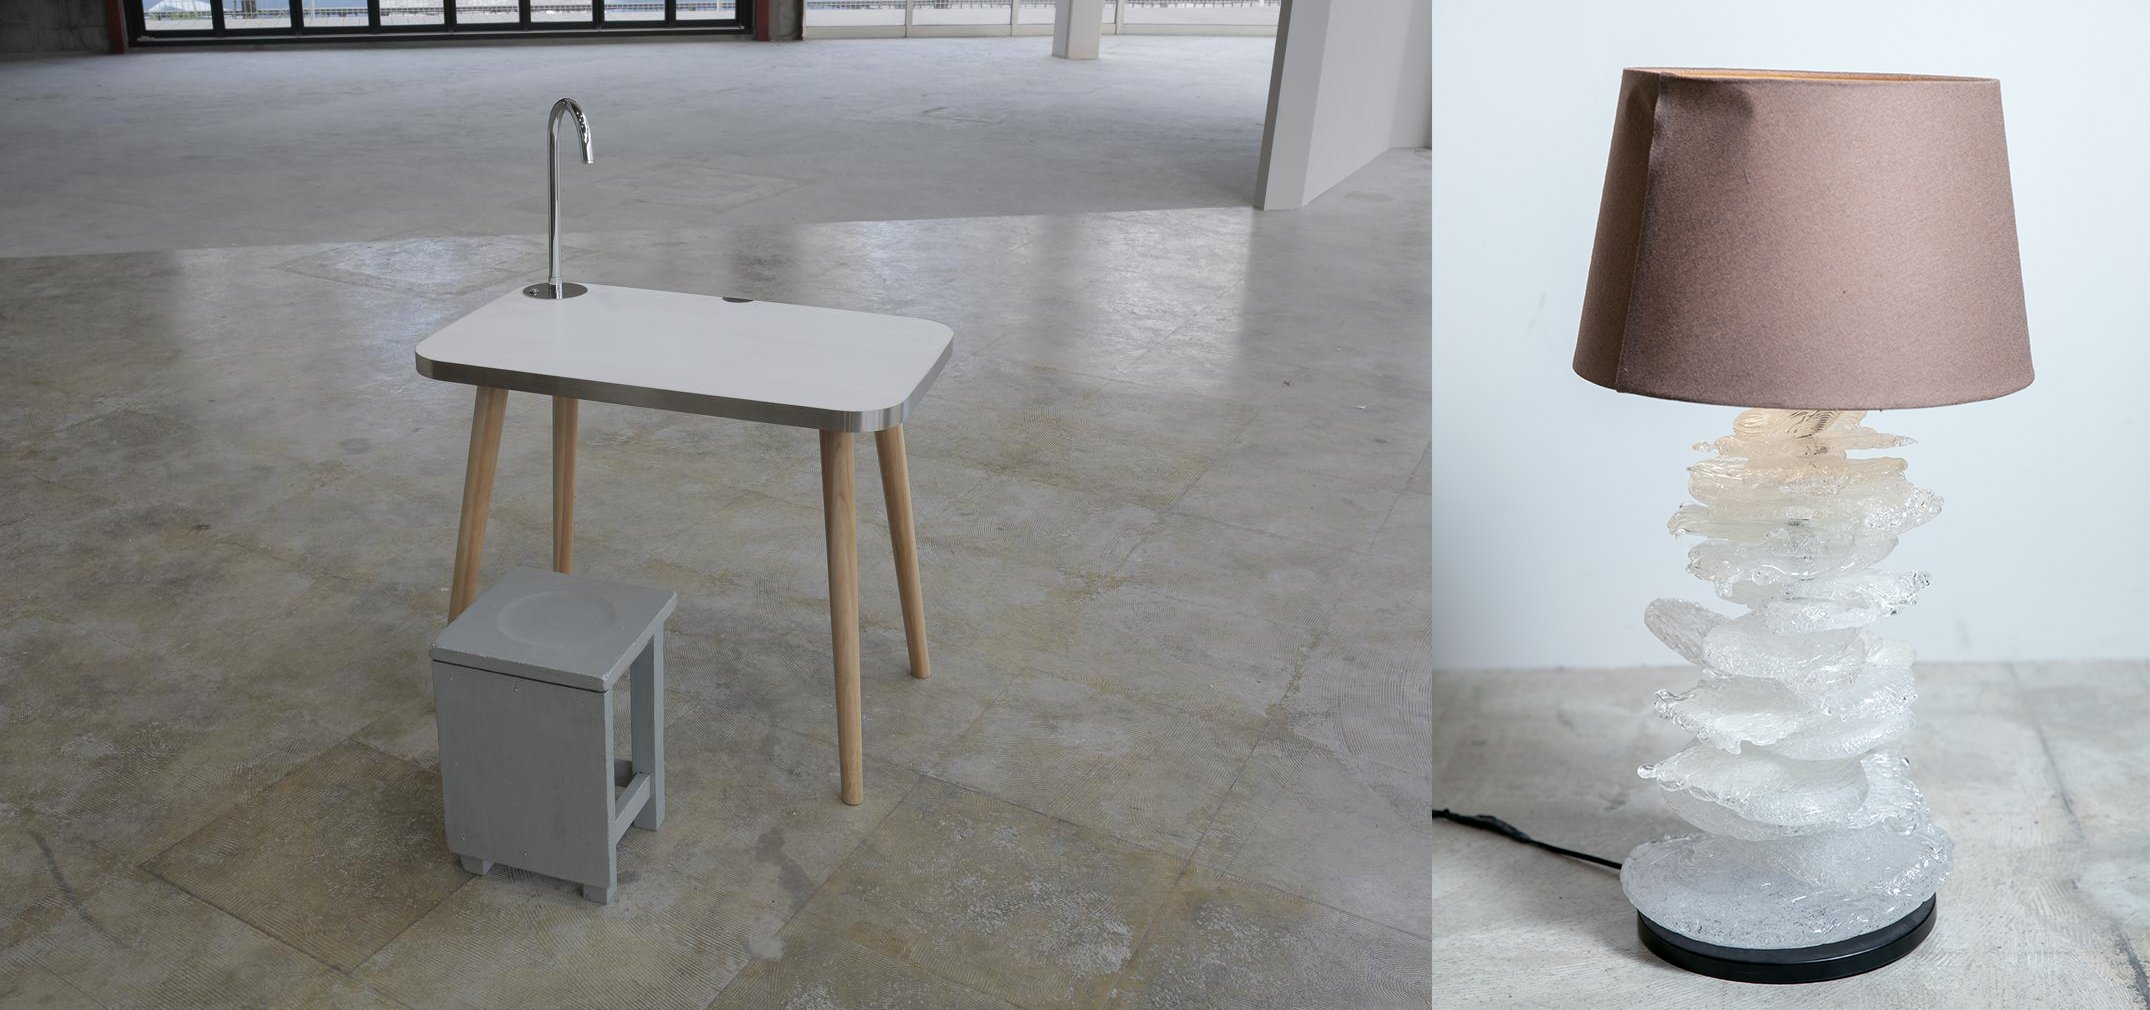 Photo: Table with a system kitchen counter tabletop and a resin lamp.